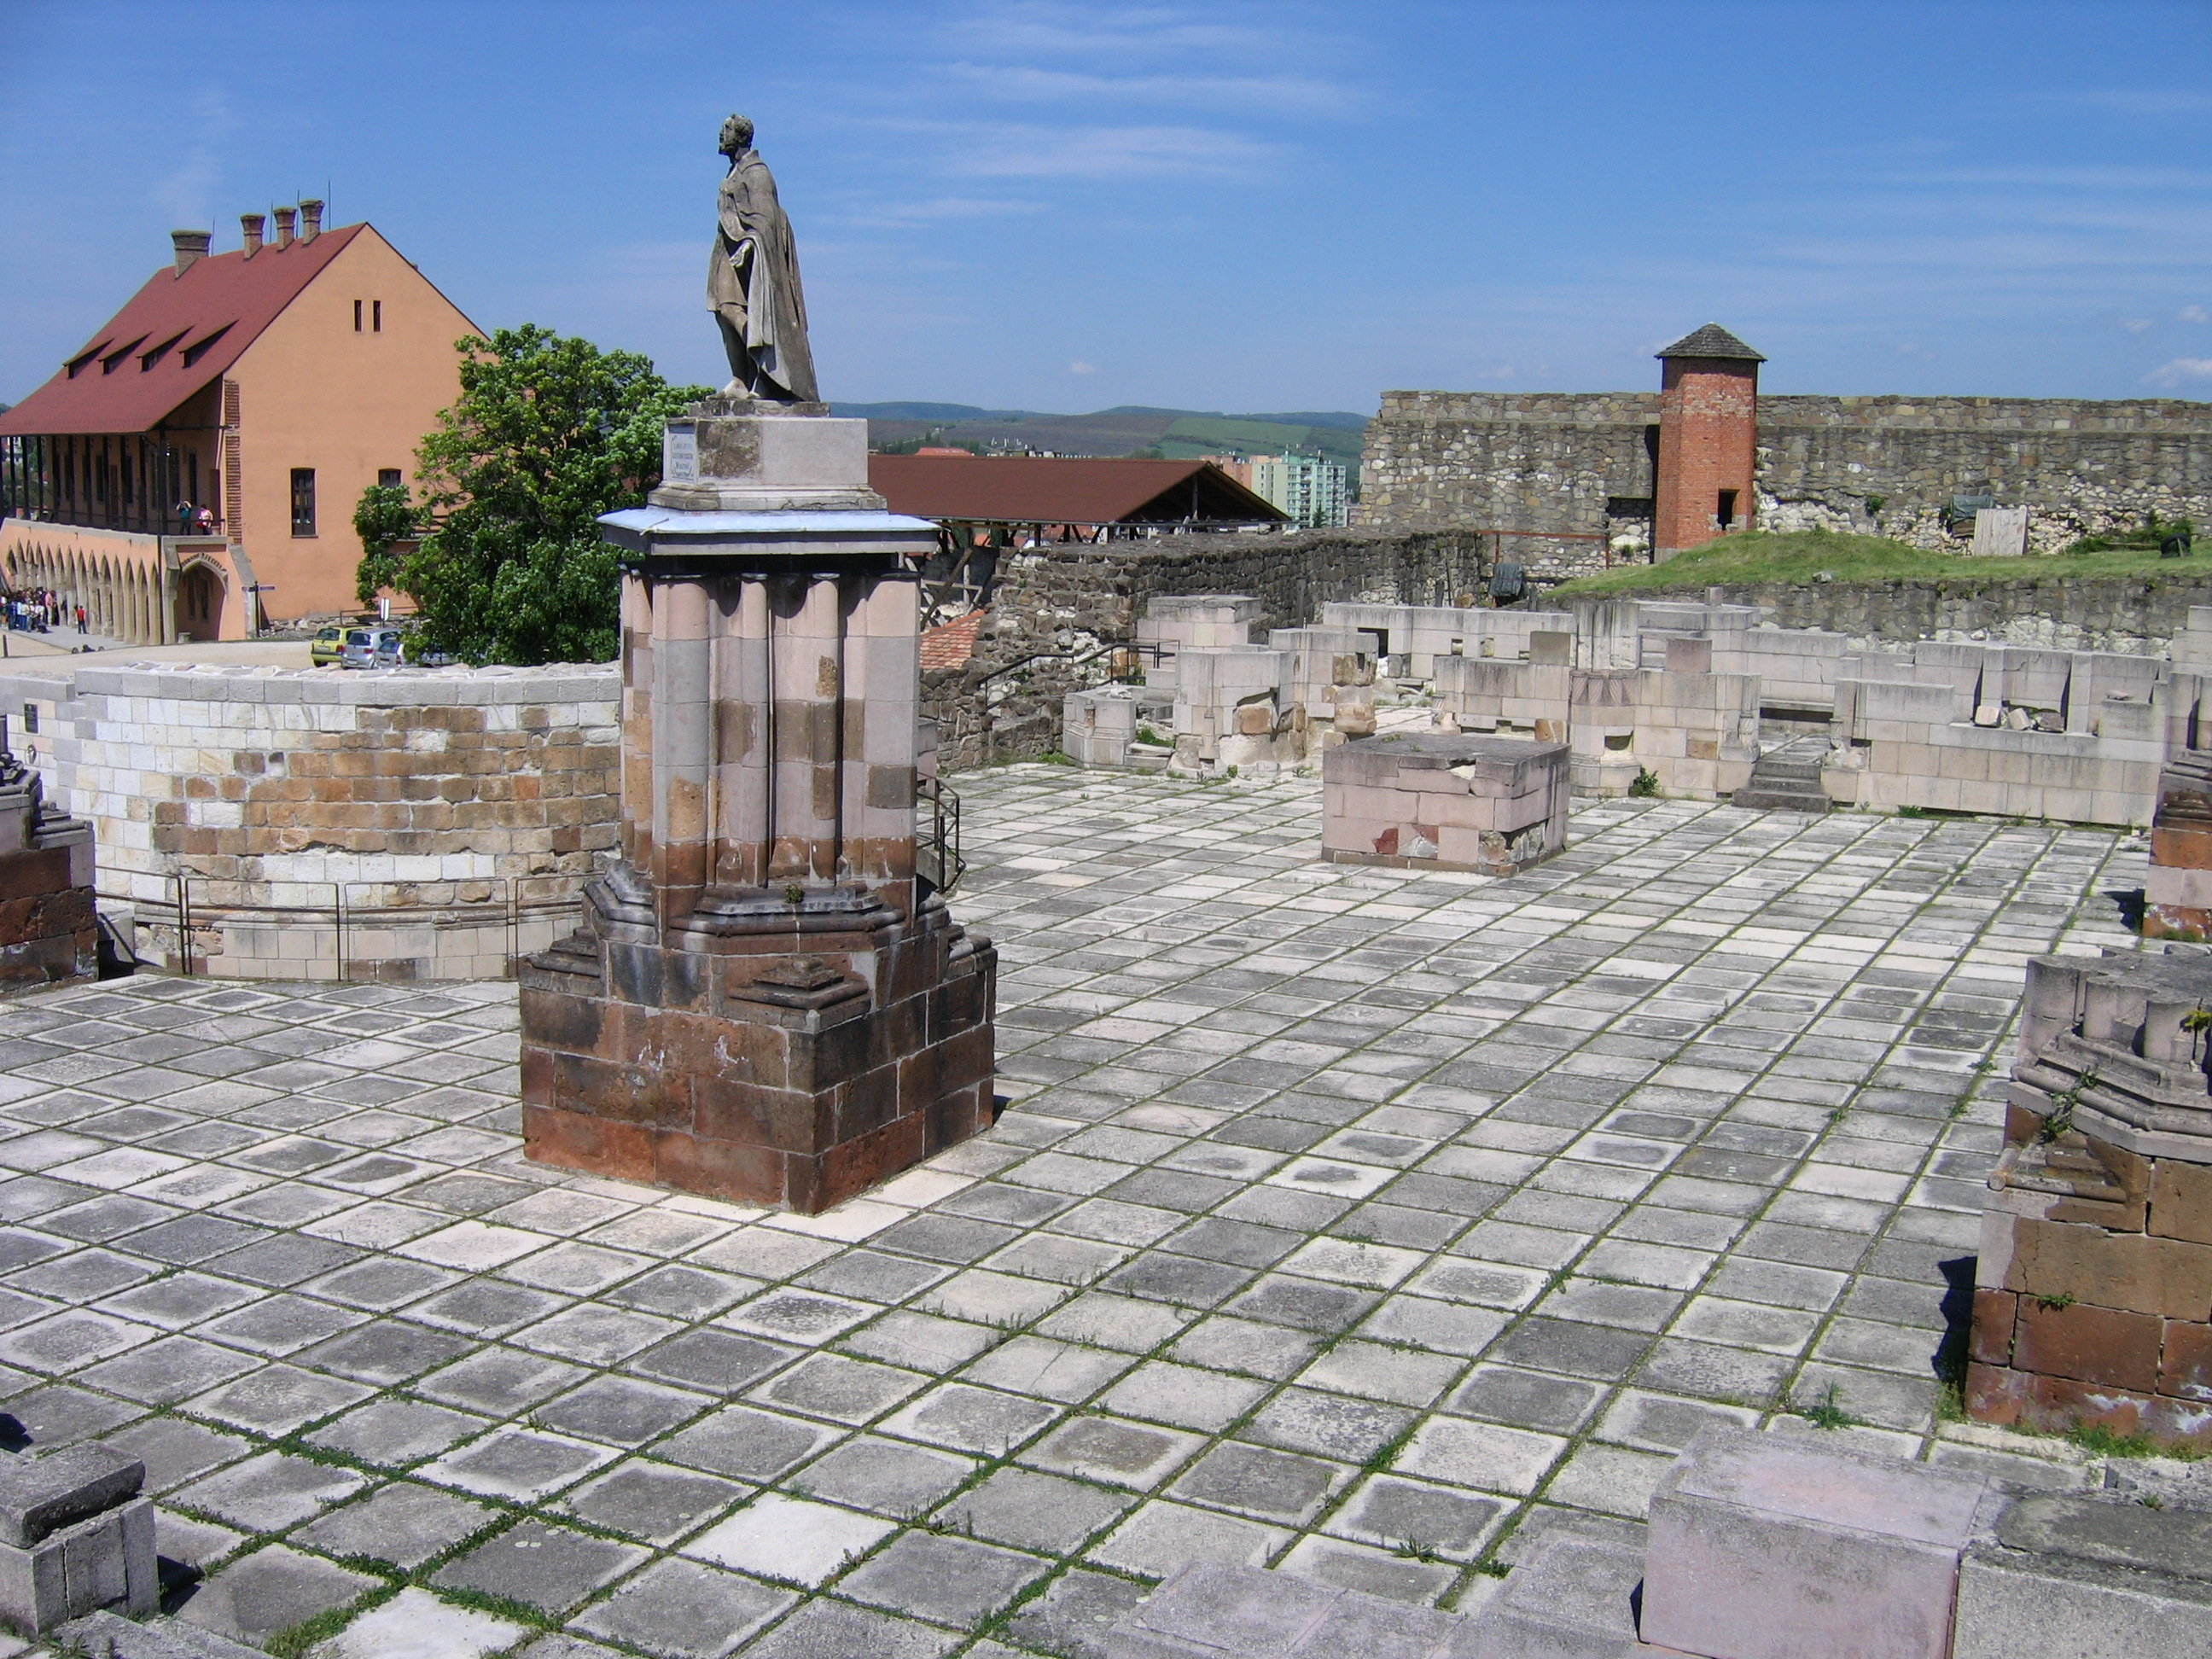 Eger Hungary  City new picture : IMG 0478 Hungary, Eger Citadel Wikipedia, the free ...